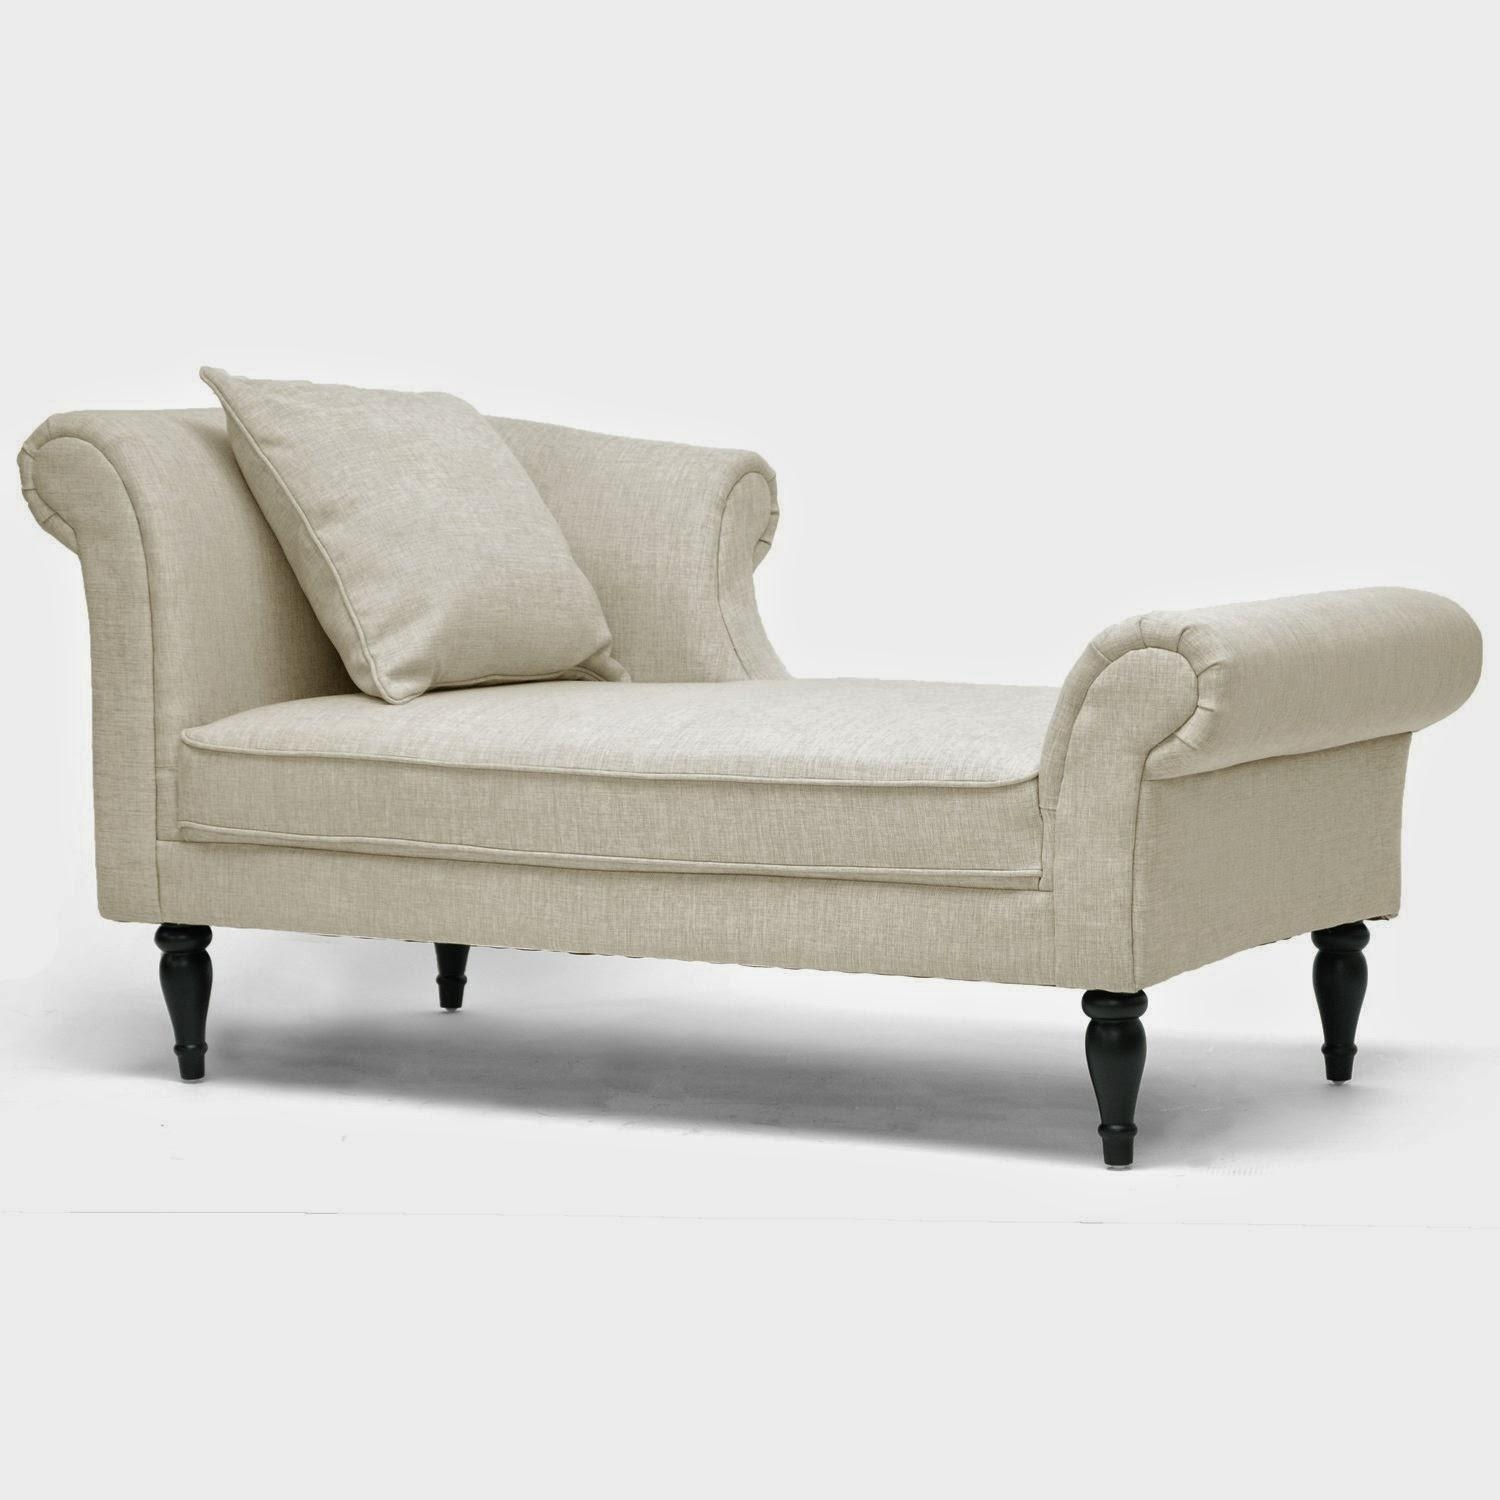 Fainting Sofa For Sale Hawthorne Chaise Lounge Wayfair (Image 18 of 20)